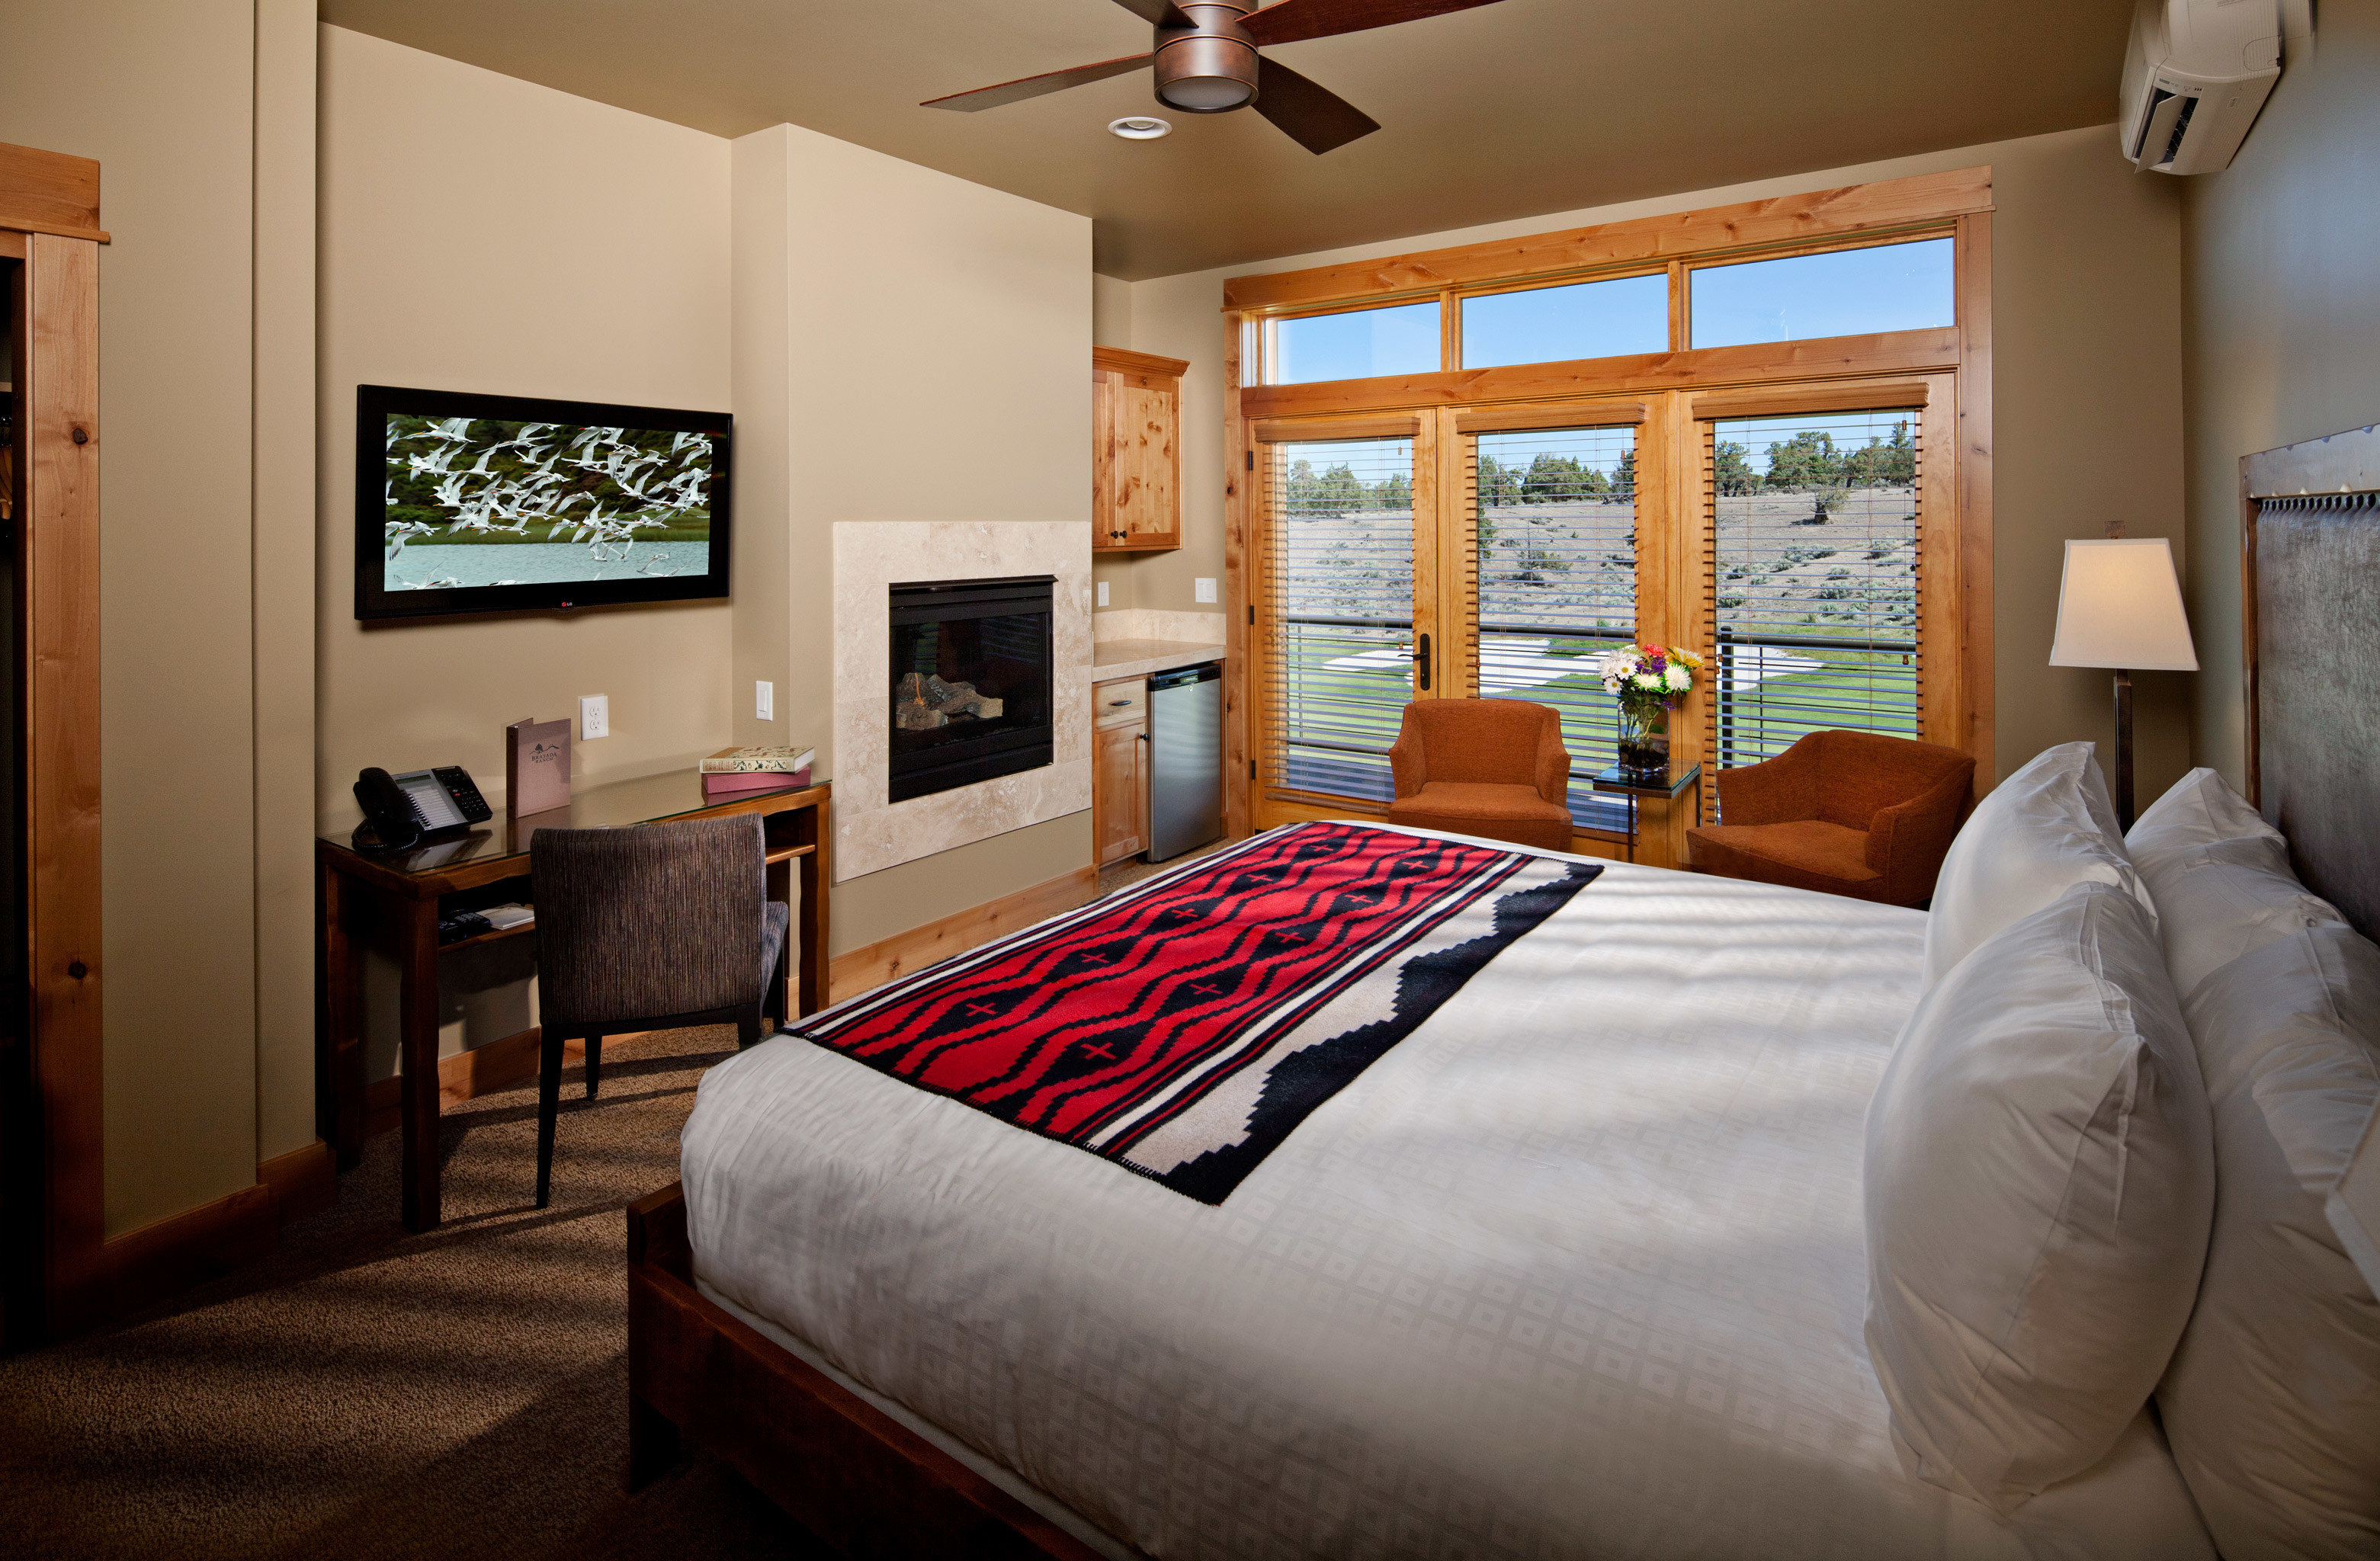 Bedroom Fireplace Ranch Rustic Scenic views sofa property home cottage living room pillow Suite